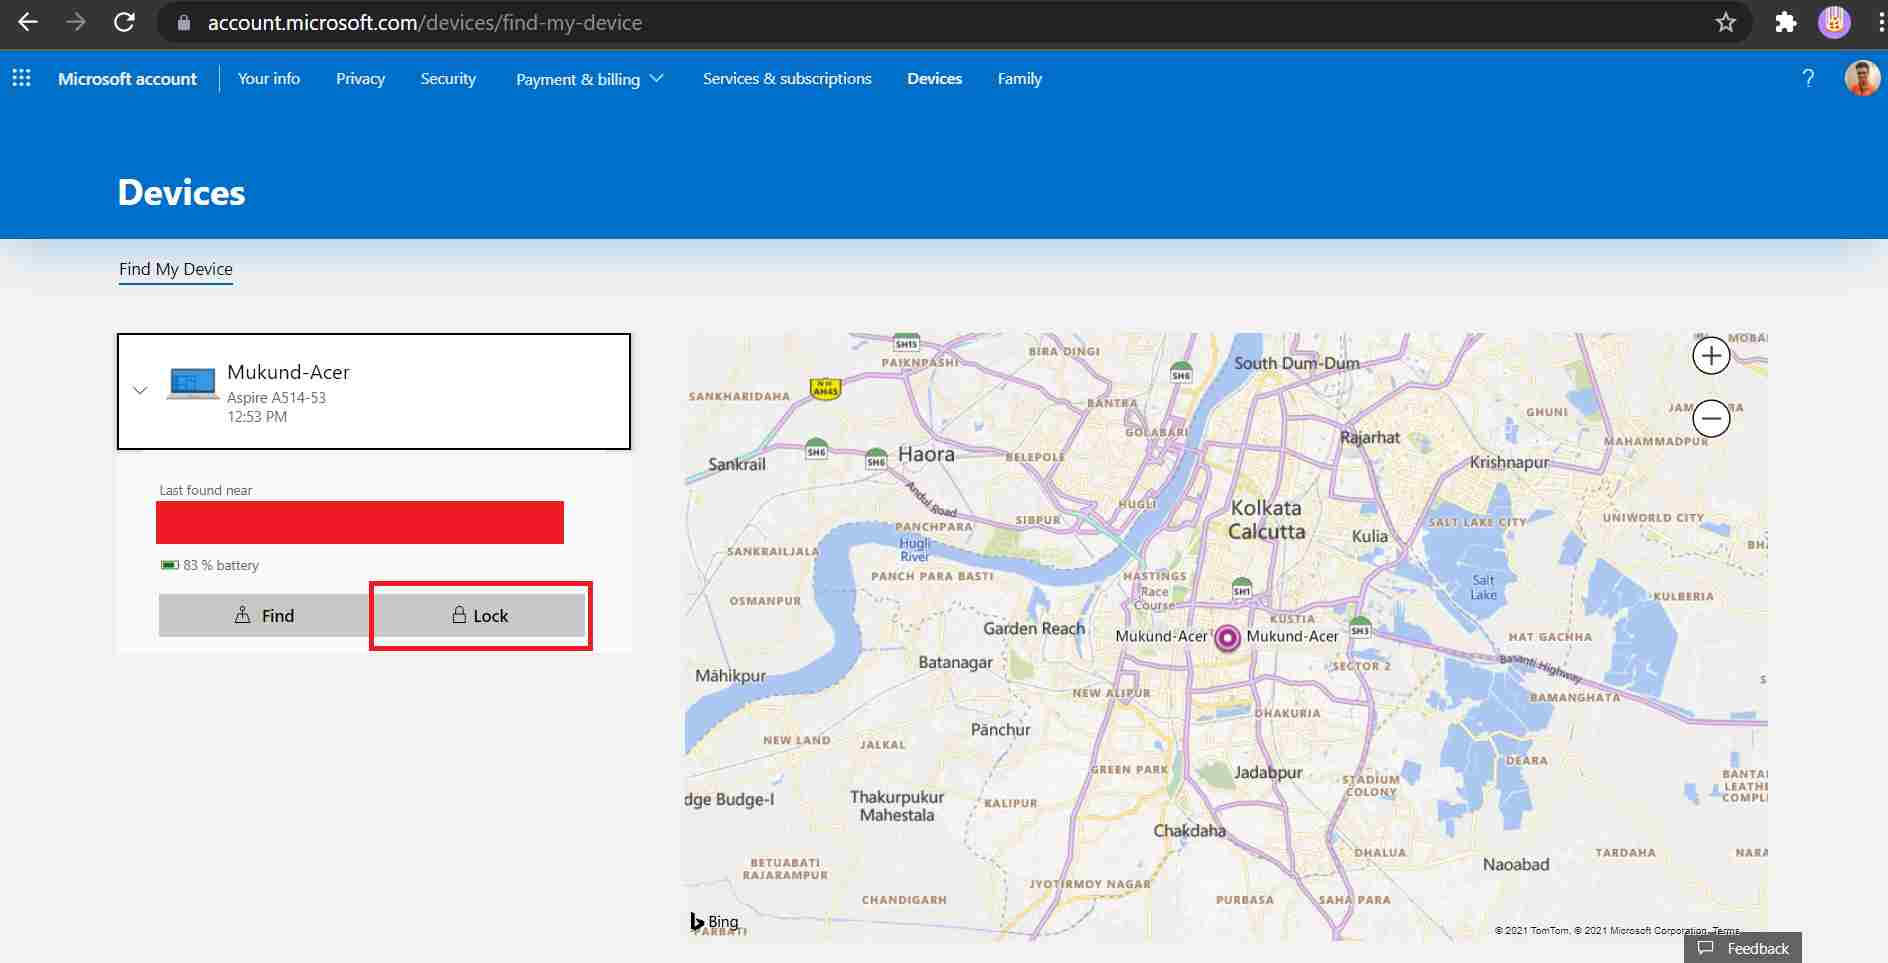 How To Locate And Lock Your Lost Windows Laptop, Lock Your Lost Windows Laptop, Locate Your Lost Windows Laptop, Locate And Lock Your Lost Windows Laptop, how to find my laptop, find my laptop